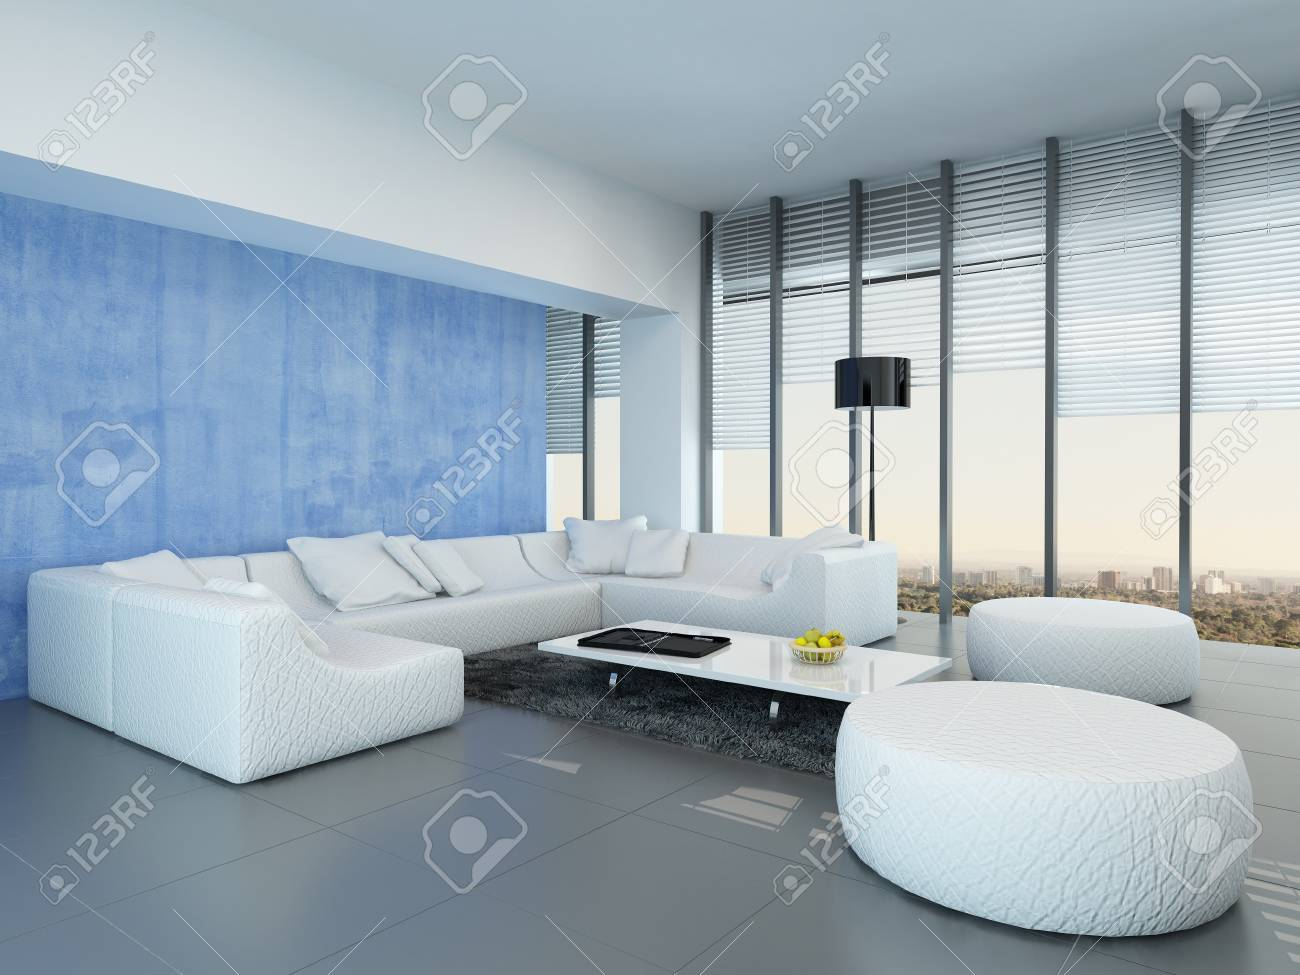 Contemporary Grey Blue And White Living Room Interior Decor With A Modular Lounge Suite